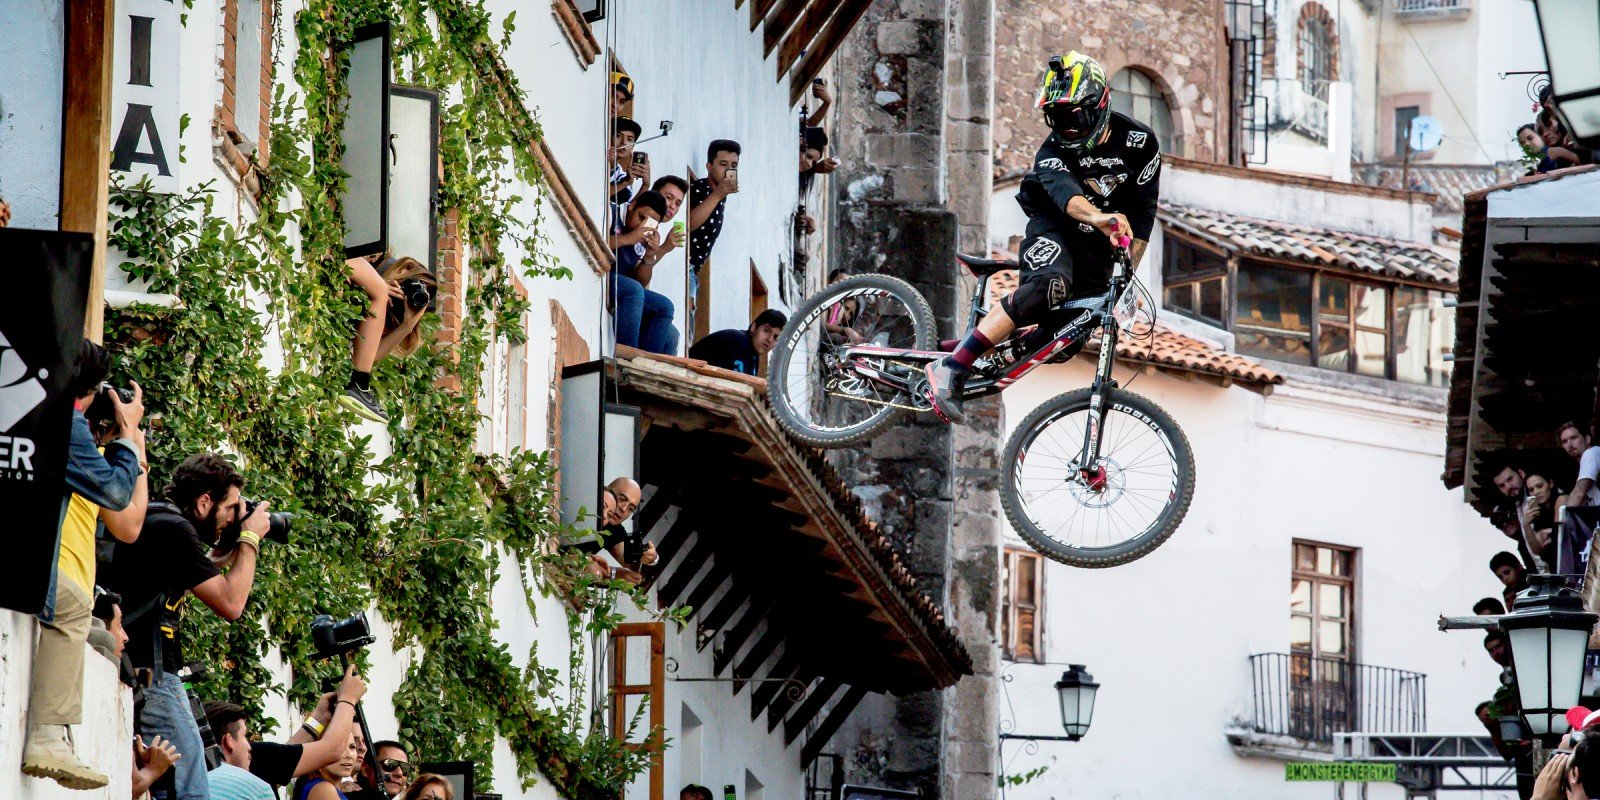 Cam Zink competing in the 2015 Downhill Race in Taxco, Mexico